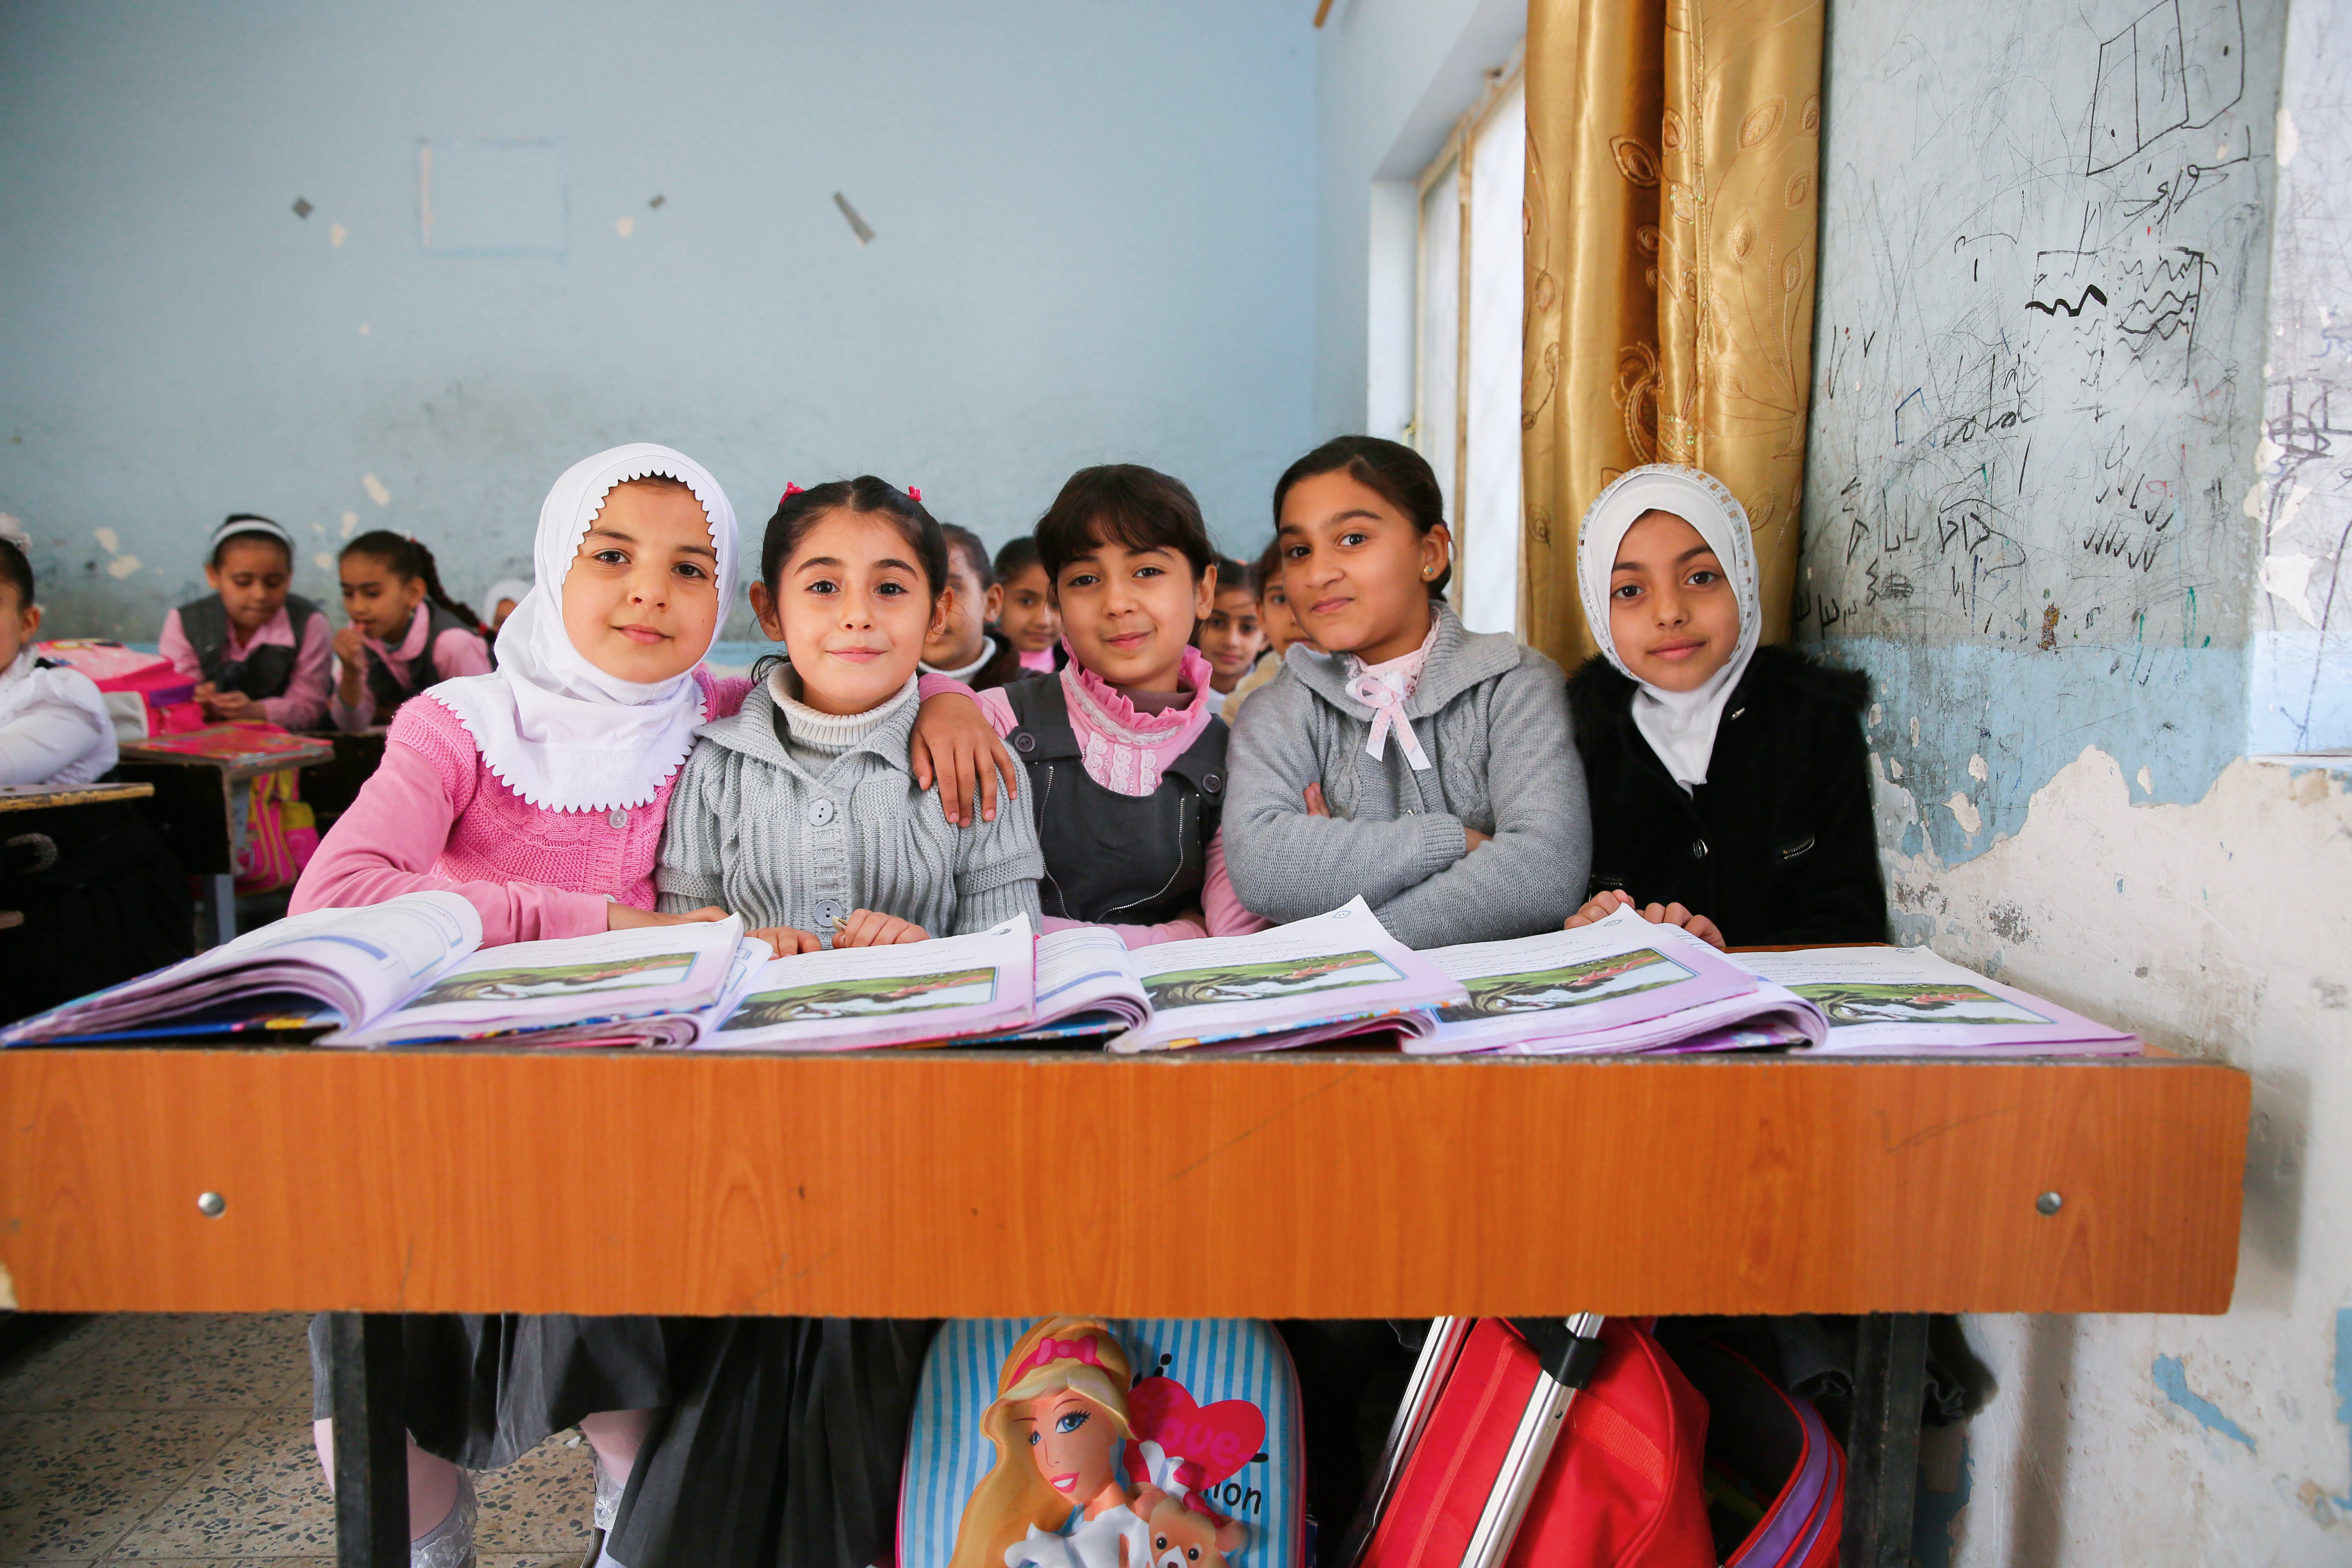 Five little girls sit at their school desk, smiling, their books open on the desk